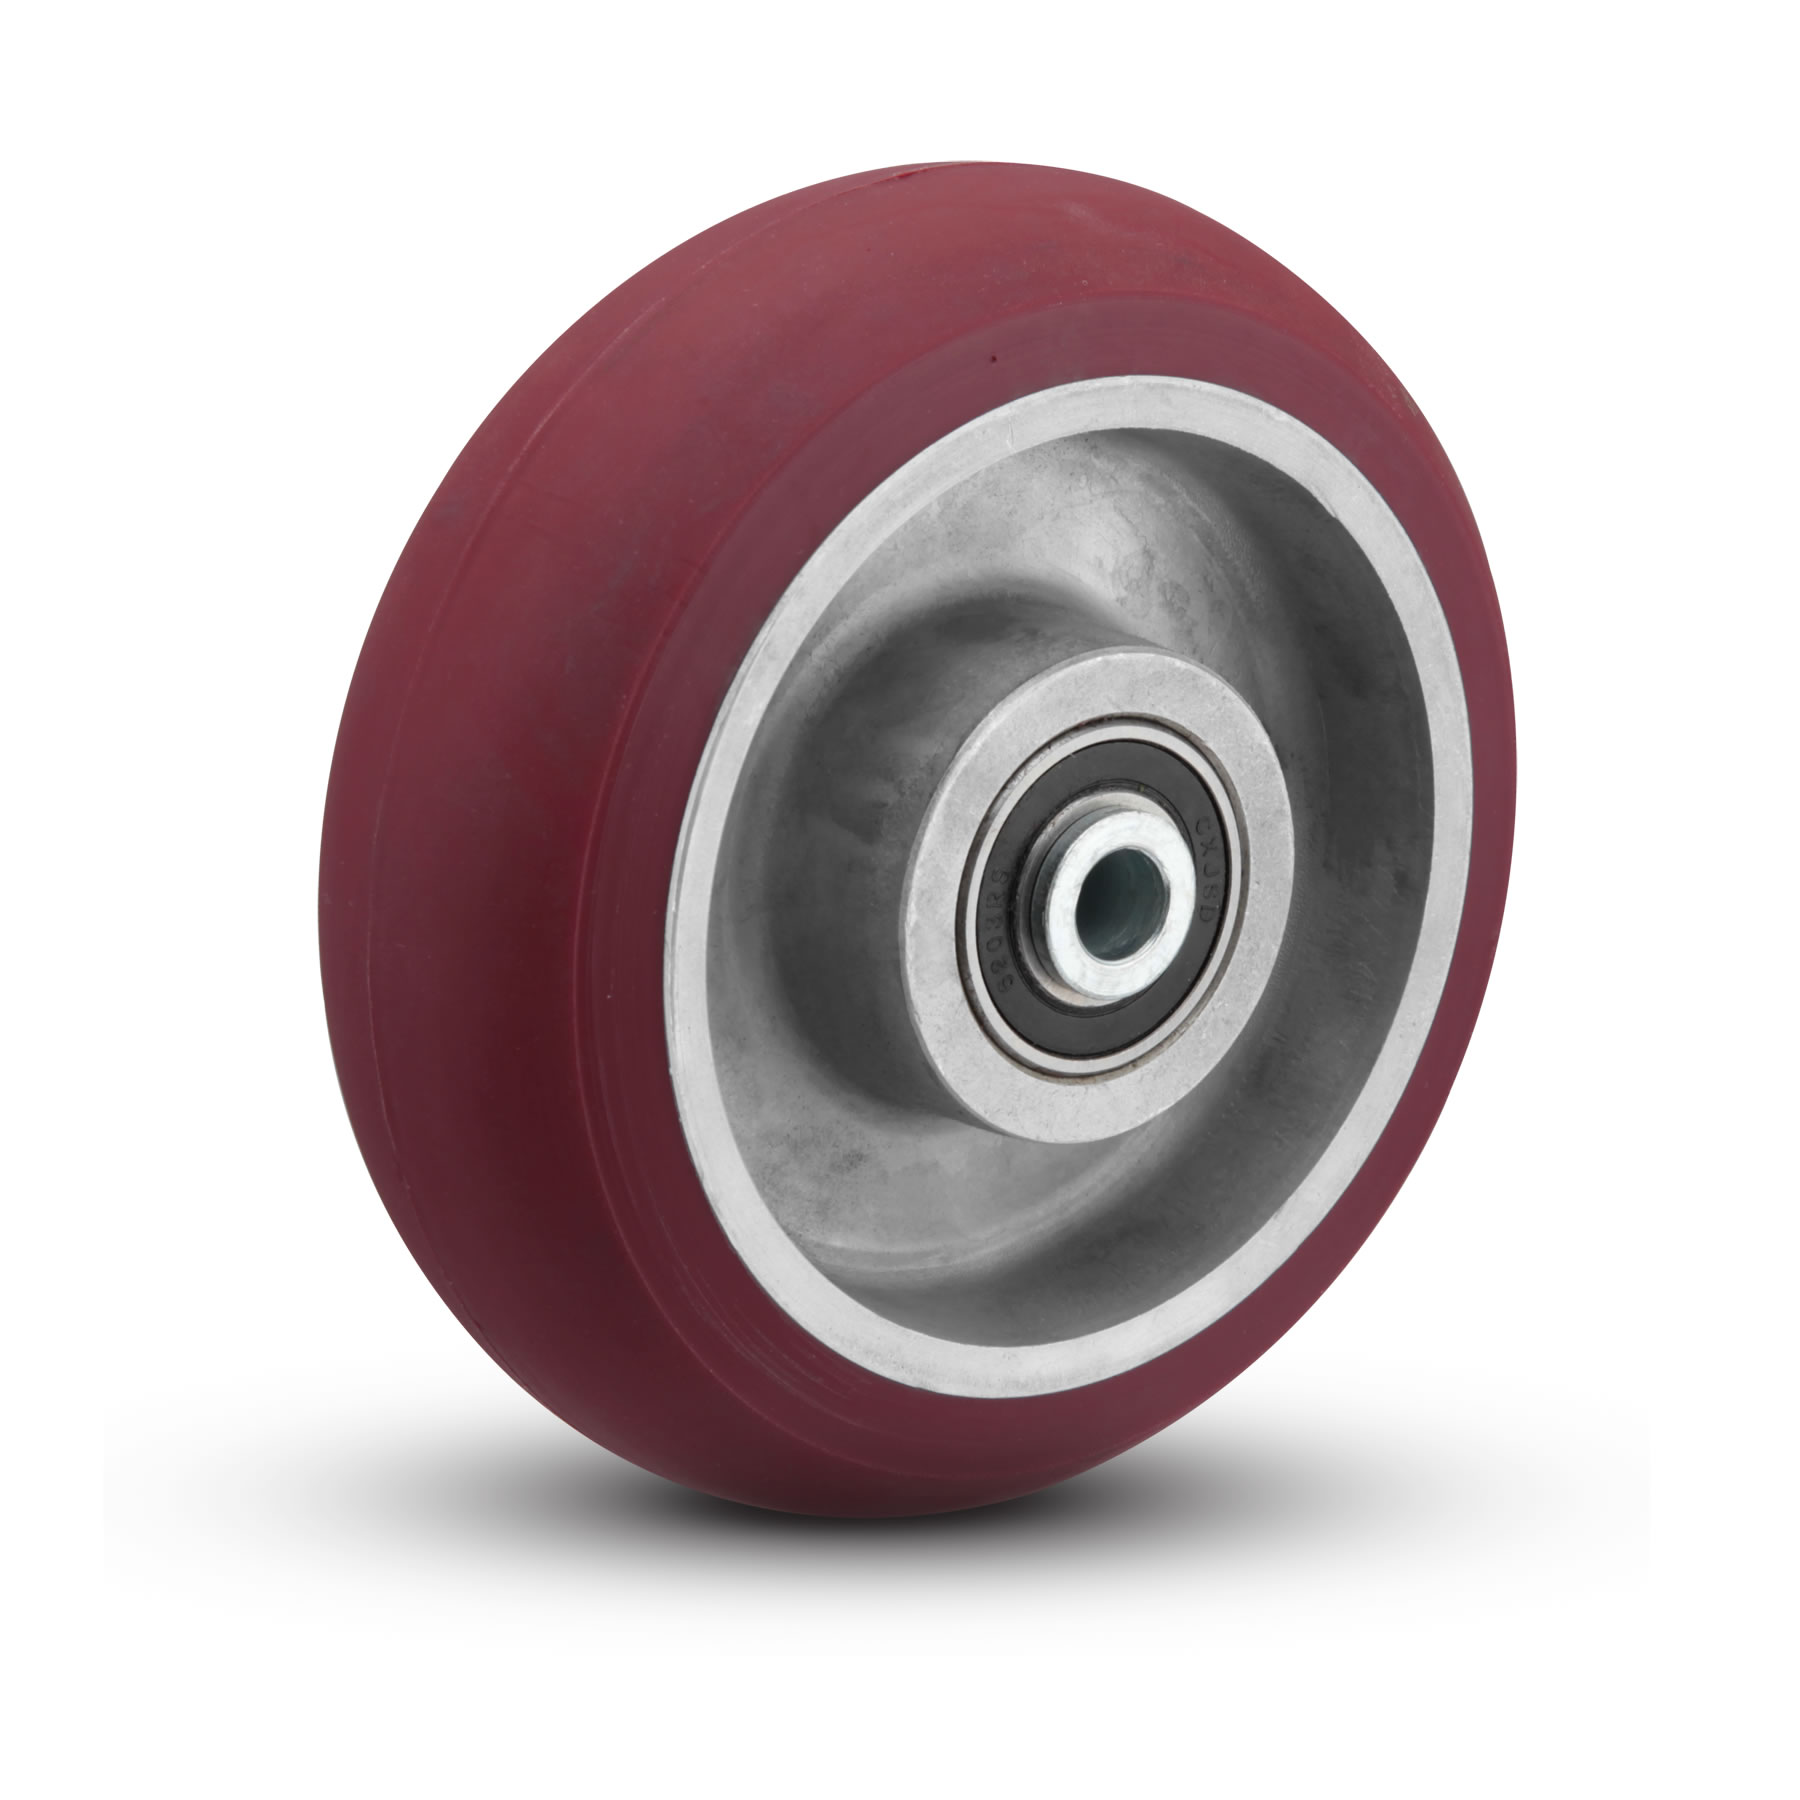 Albion Casters AX Wheels